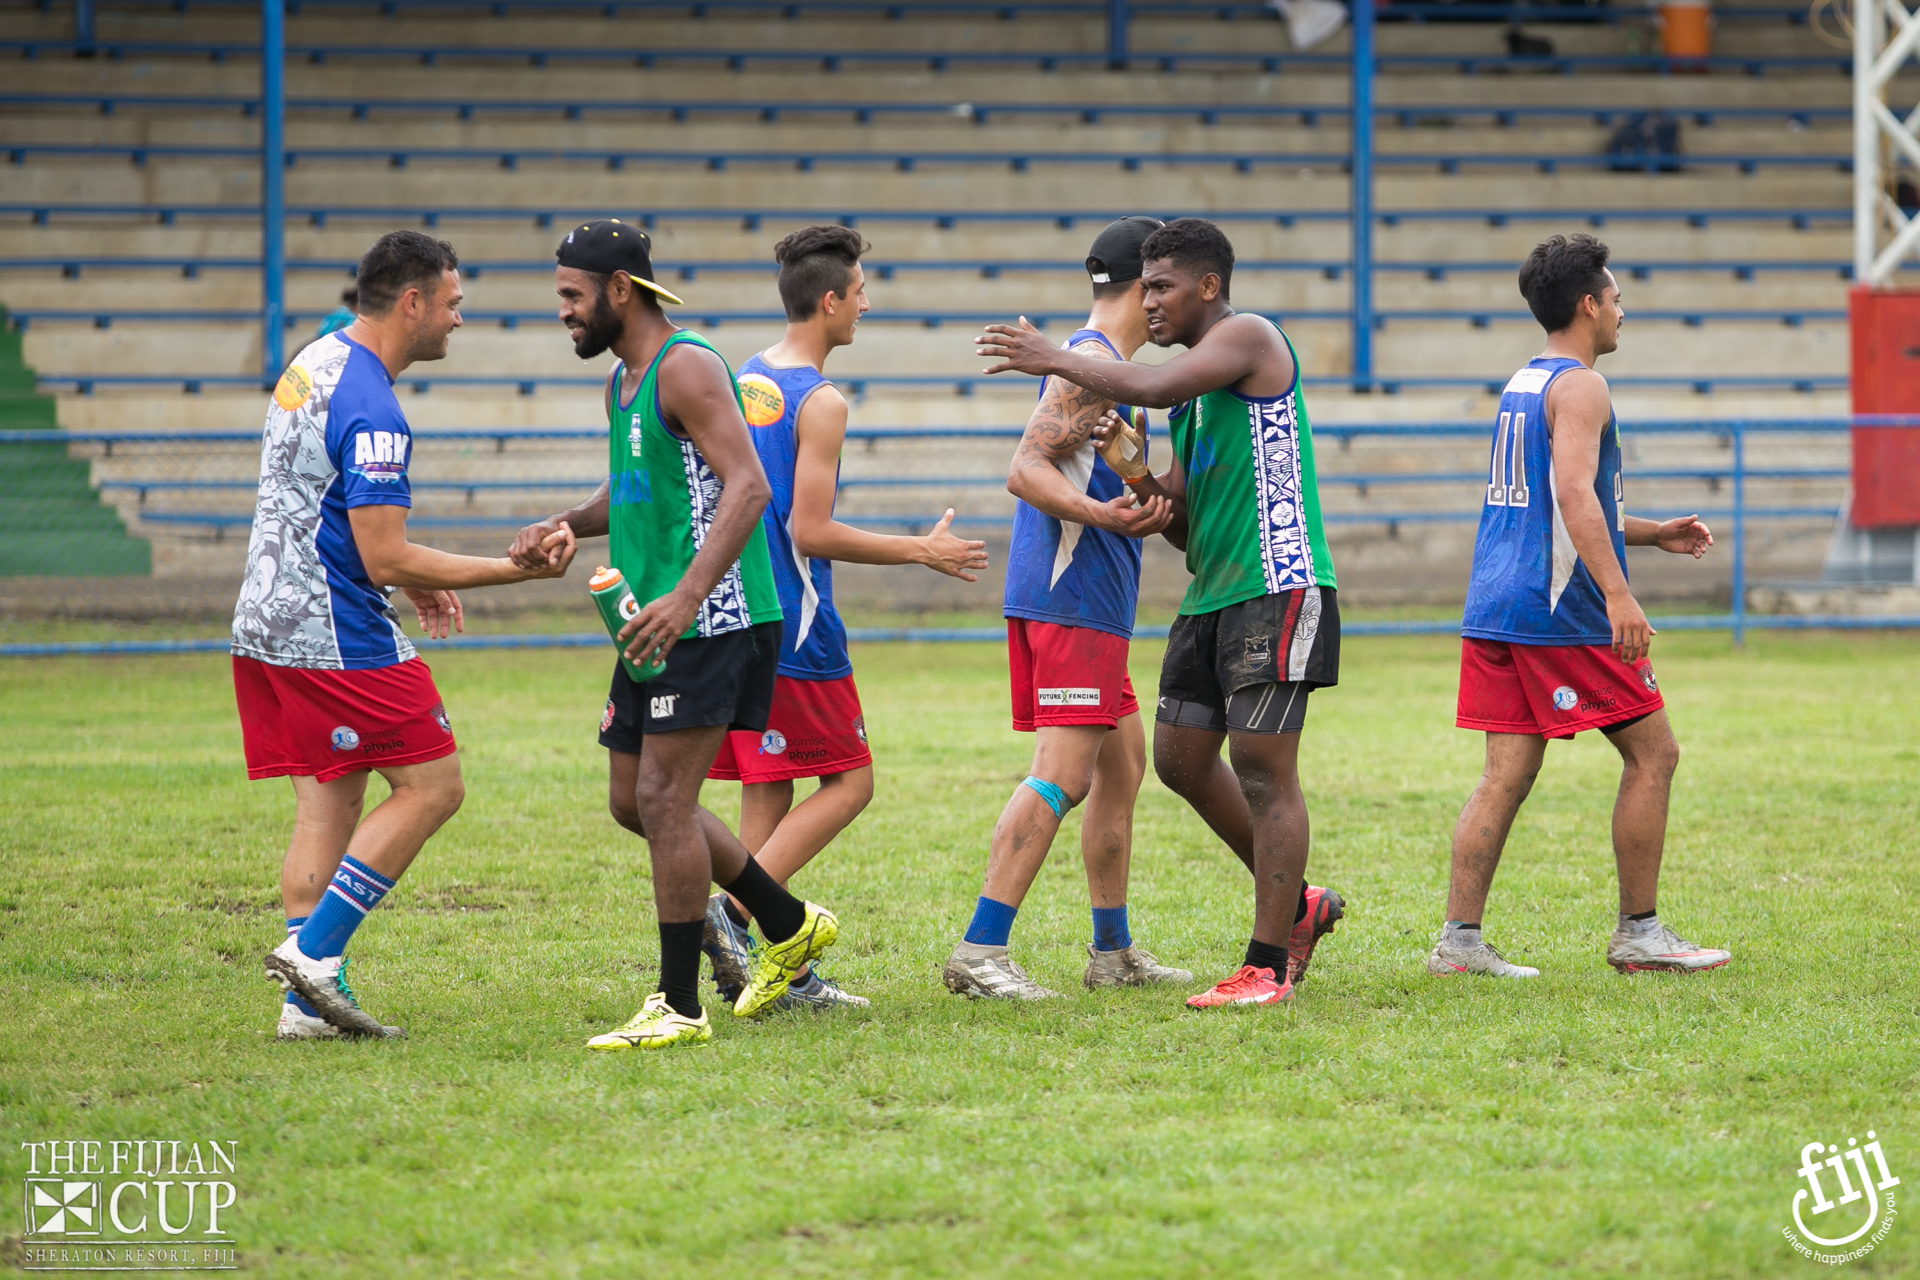 Referee at The Fijian Cup